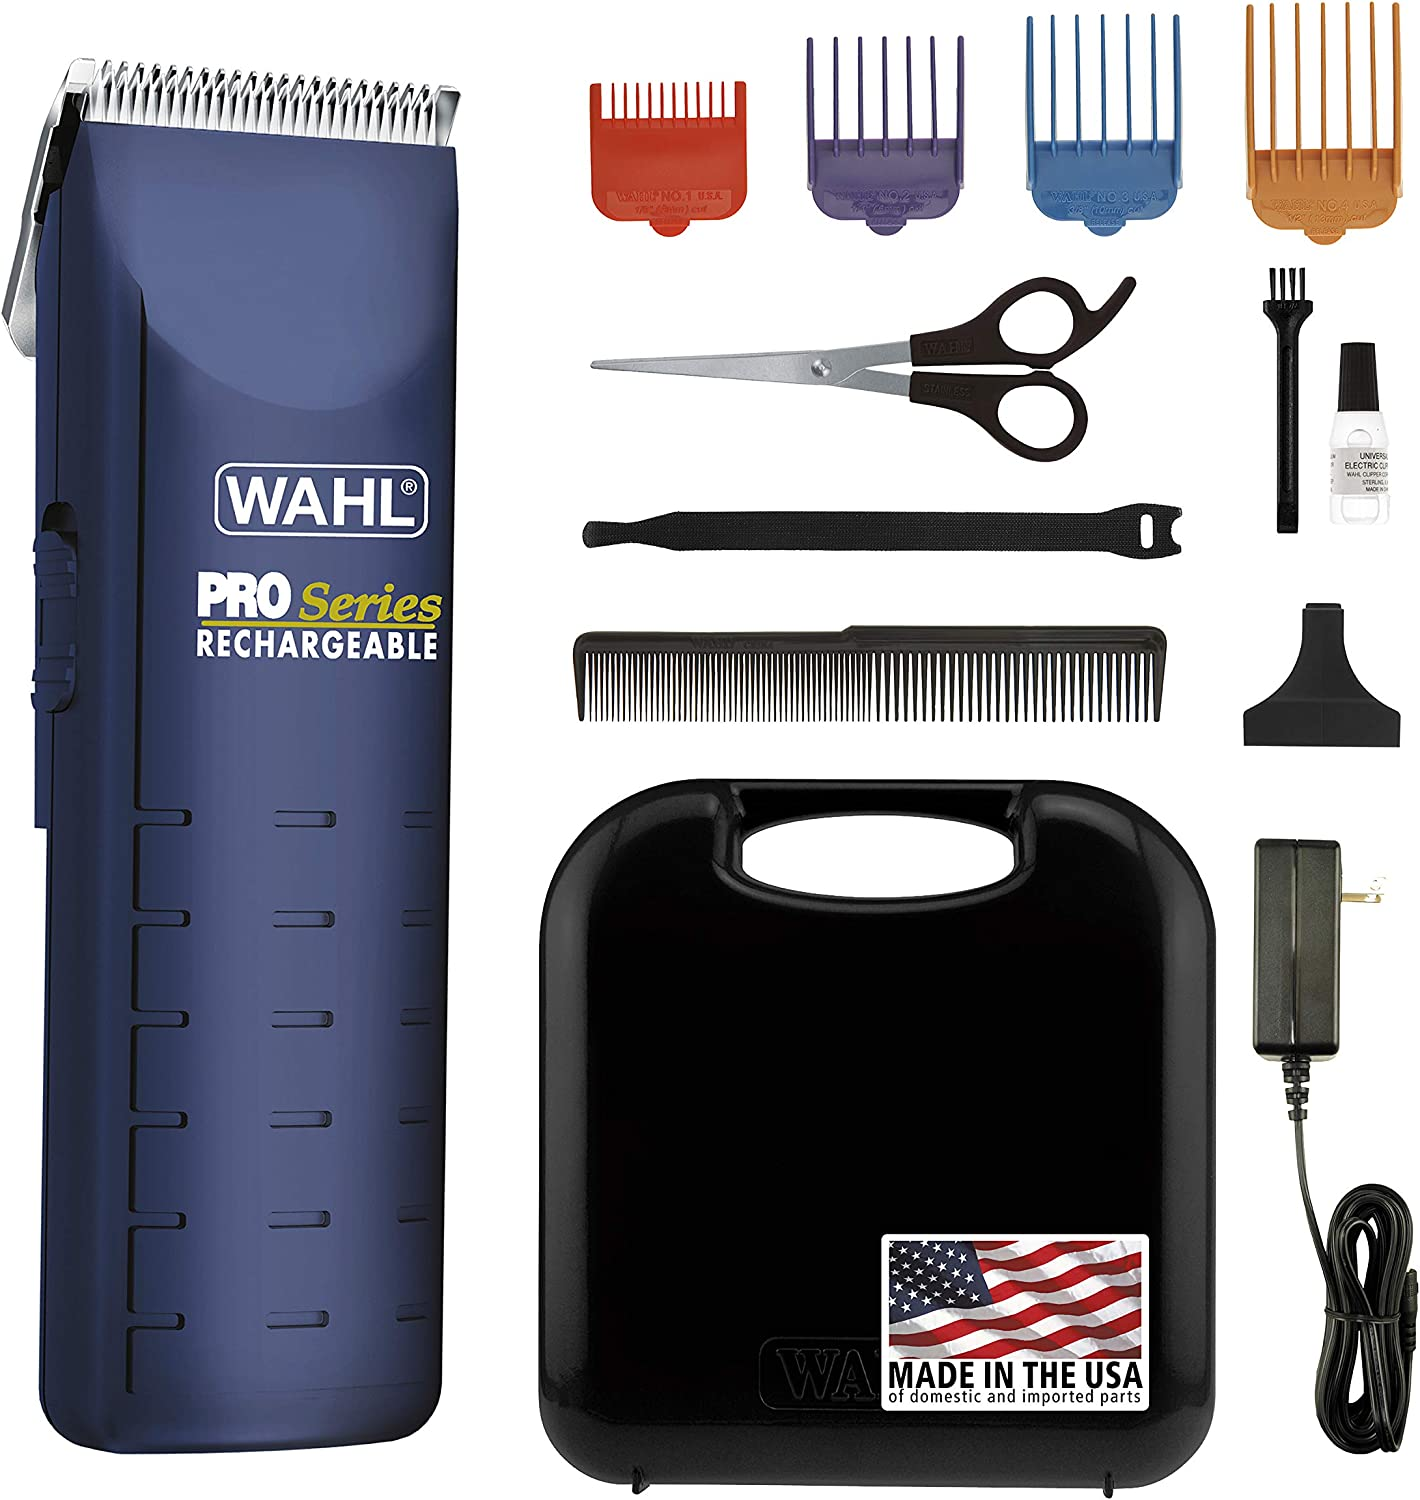 Wahl Home Pet Pro-Series Complete Pet Clipper Kit, for Pet Grooming, Trimming, and Touchups, Works Best on Fine to Medium Coated Dogs and Cats, or for...